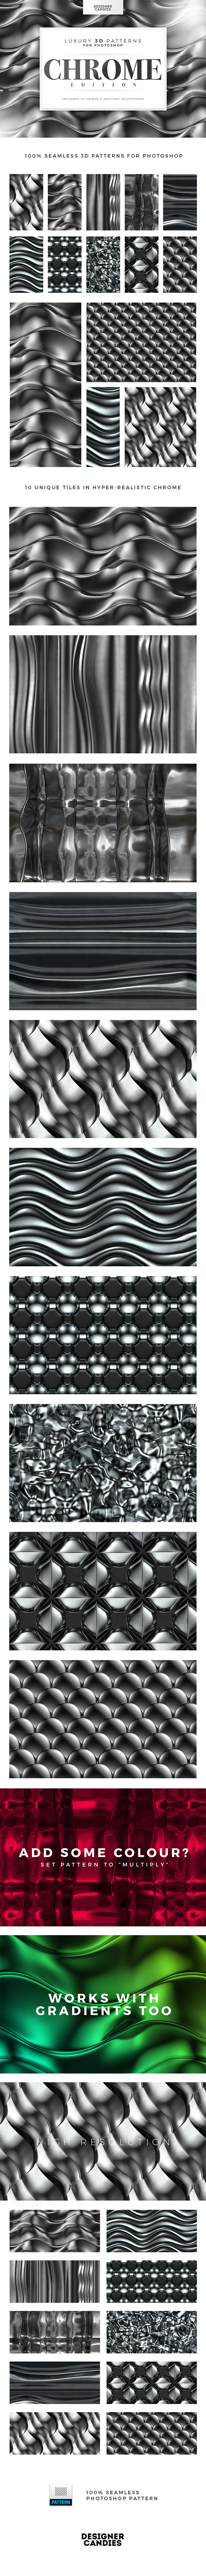 GraphicRiver 3D Chrome Patterns for Photoshop 20834455